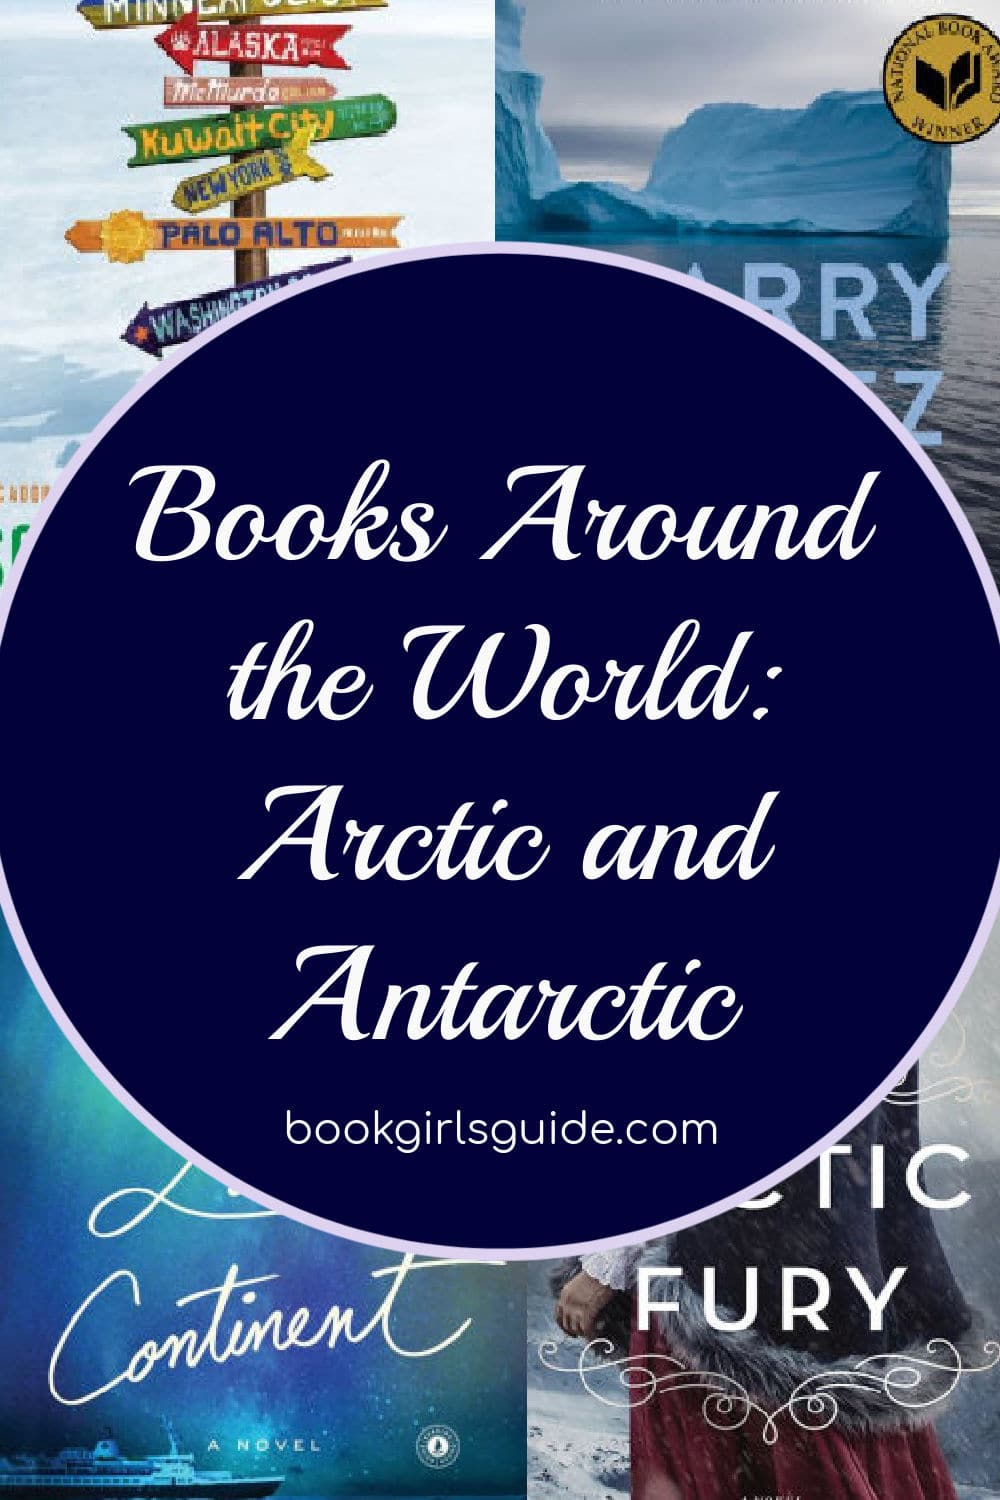 Text over book covers - Books Around the World: Arctic & Antarctica